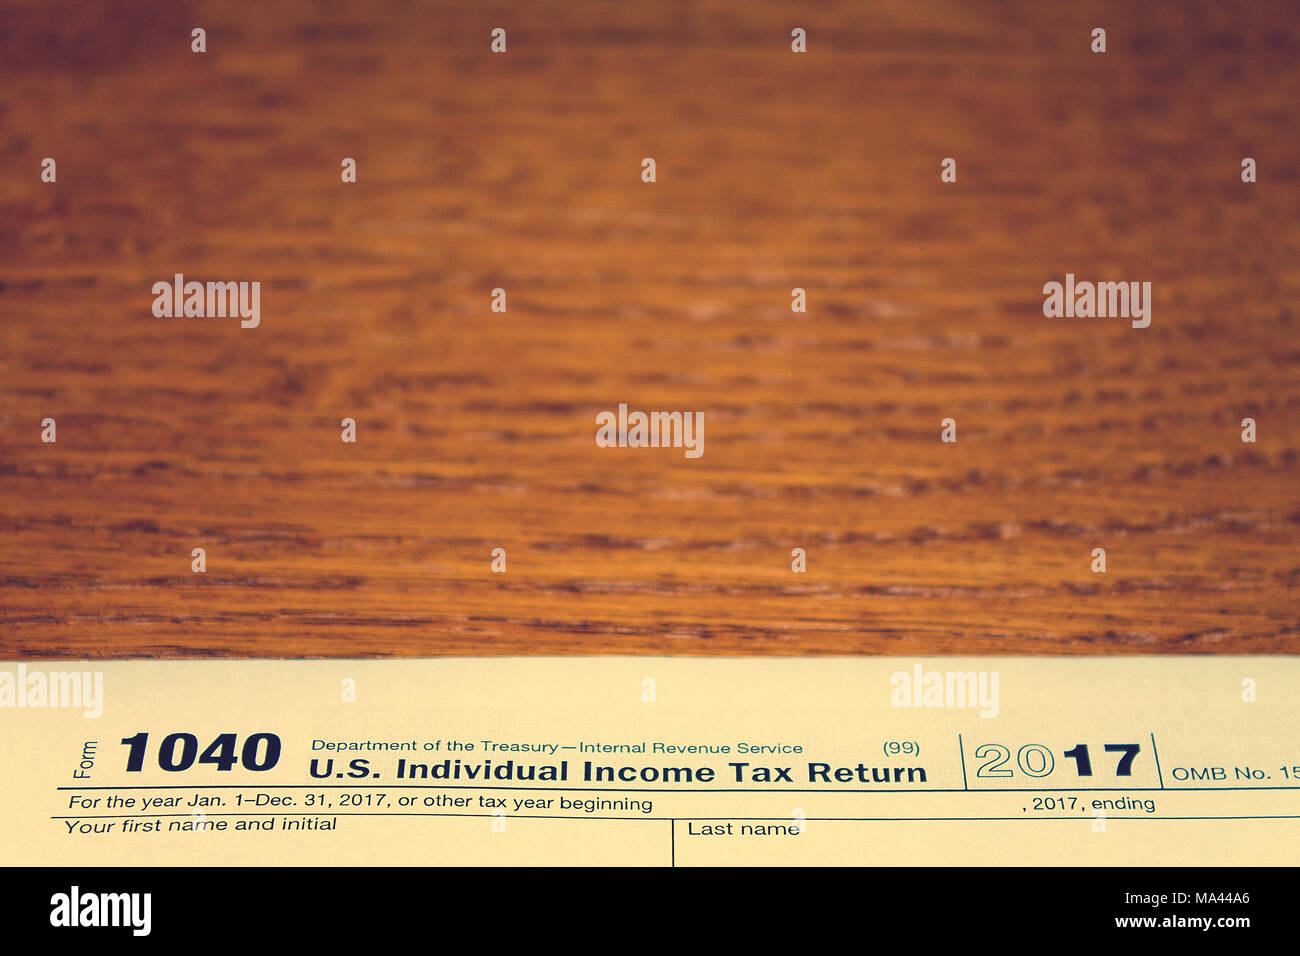 Tax Day The Tax Form 1040 Is On A Wooden Table Stock Photo